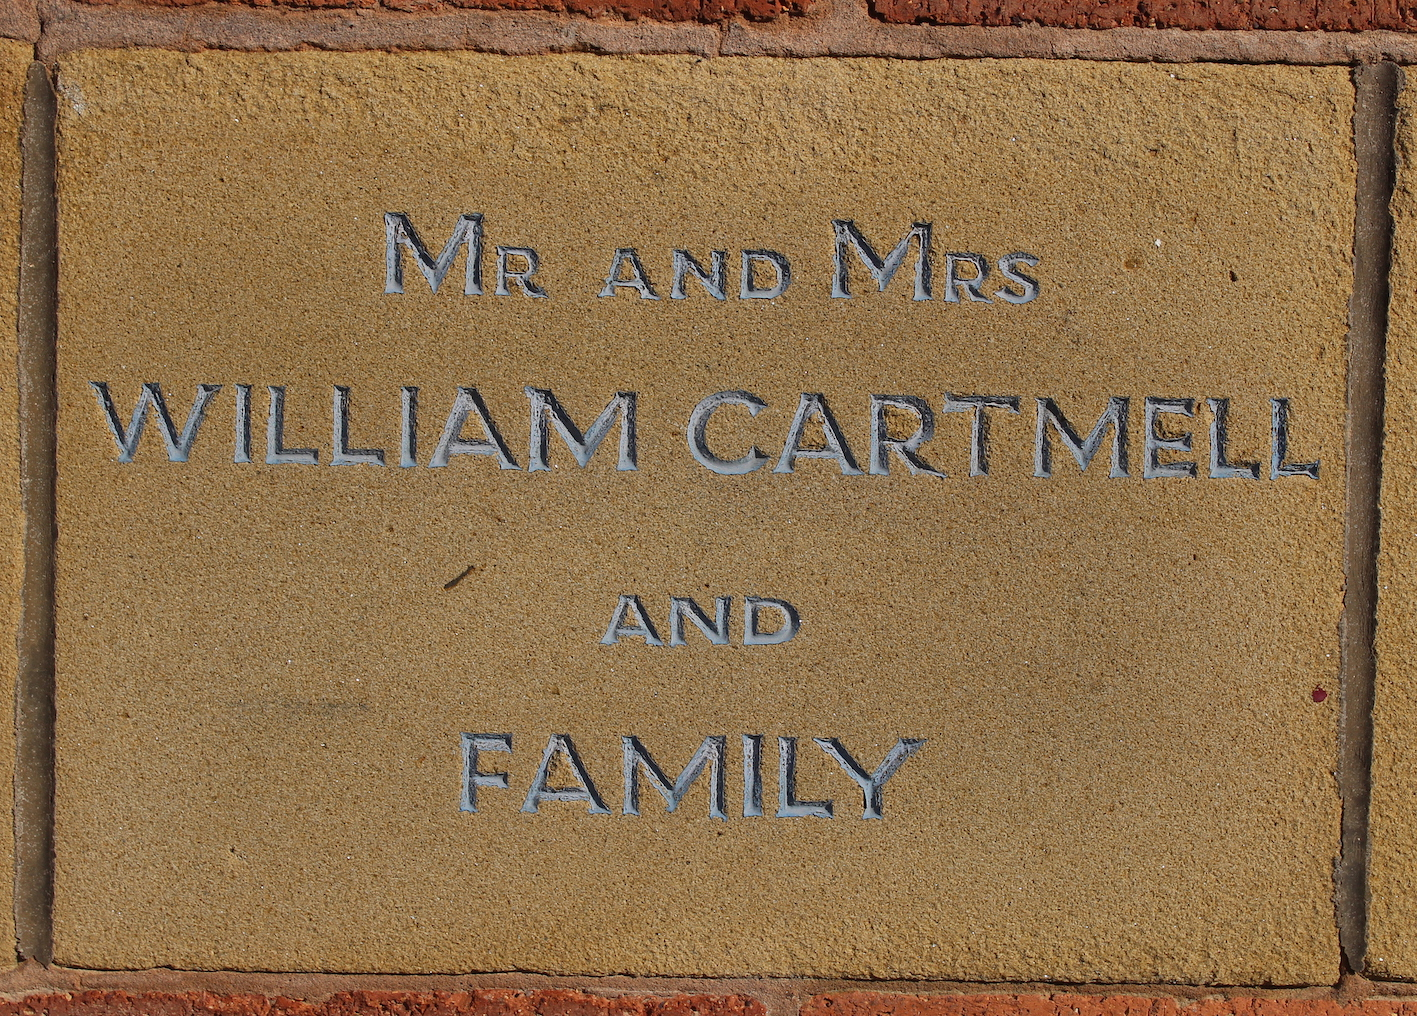 Memorial stone for Mr and Mrs William Cartmell